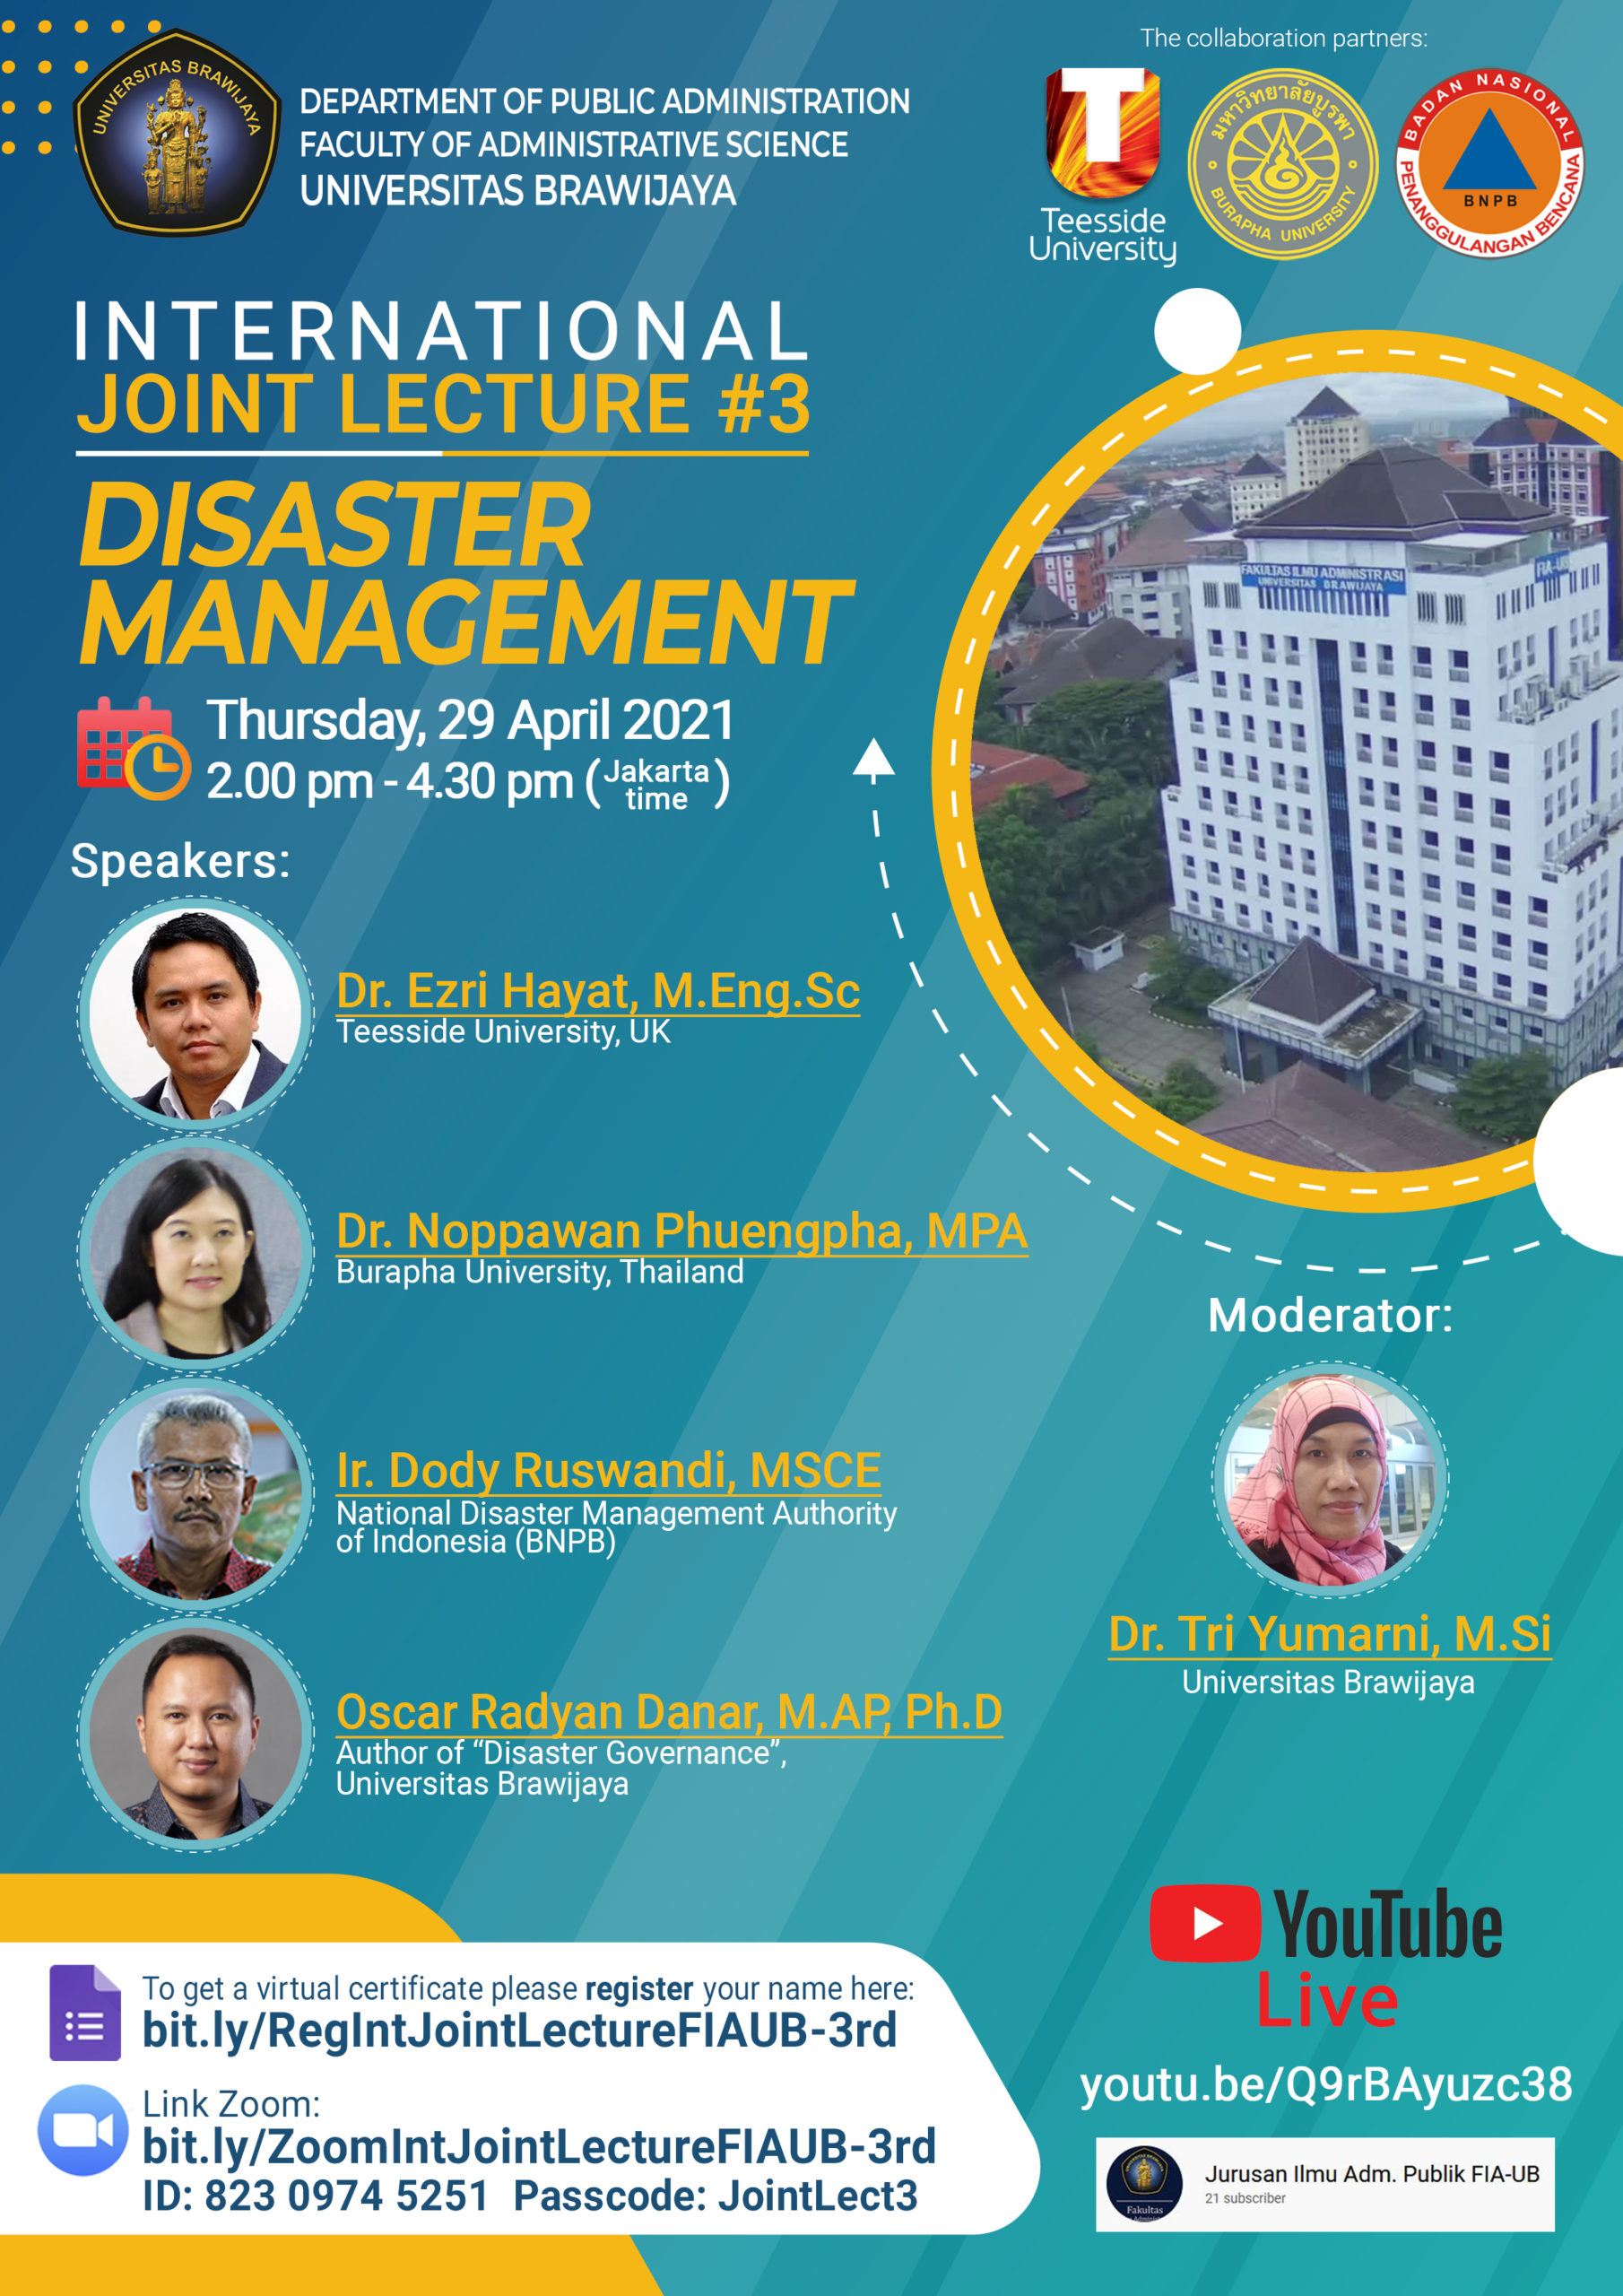 International Joint Lecturer #3 Disaster Management